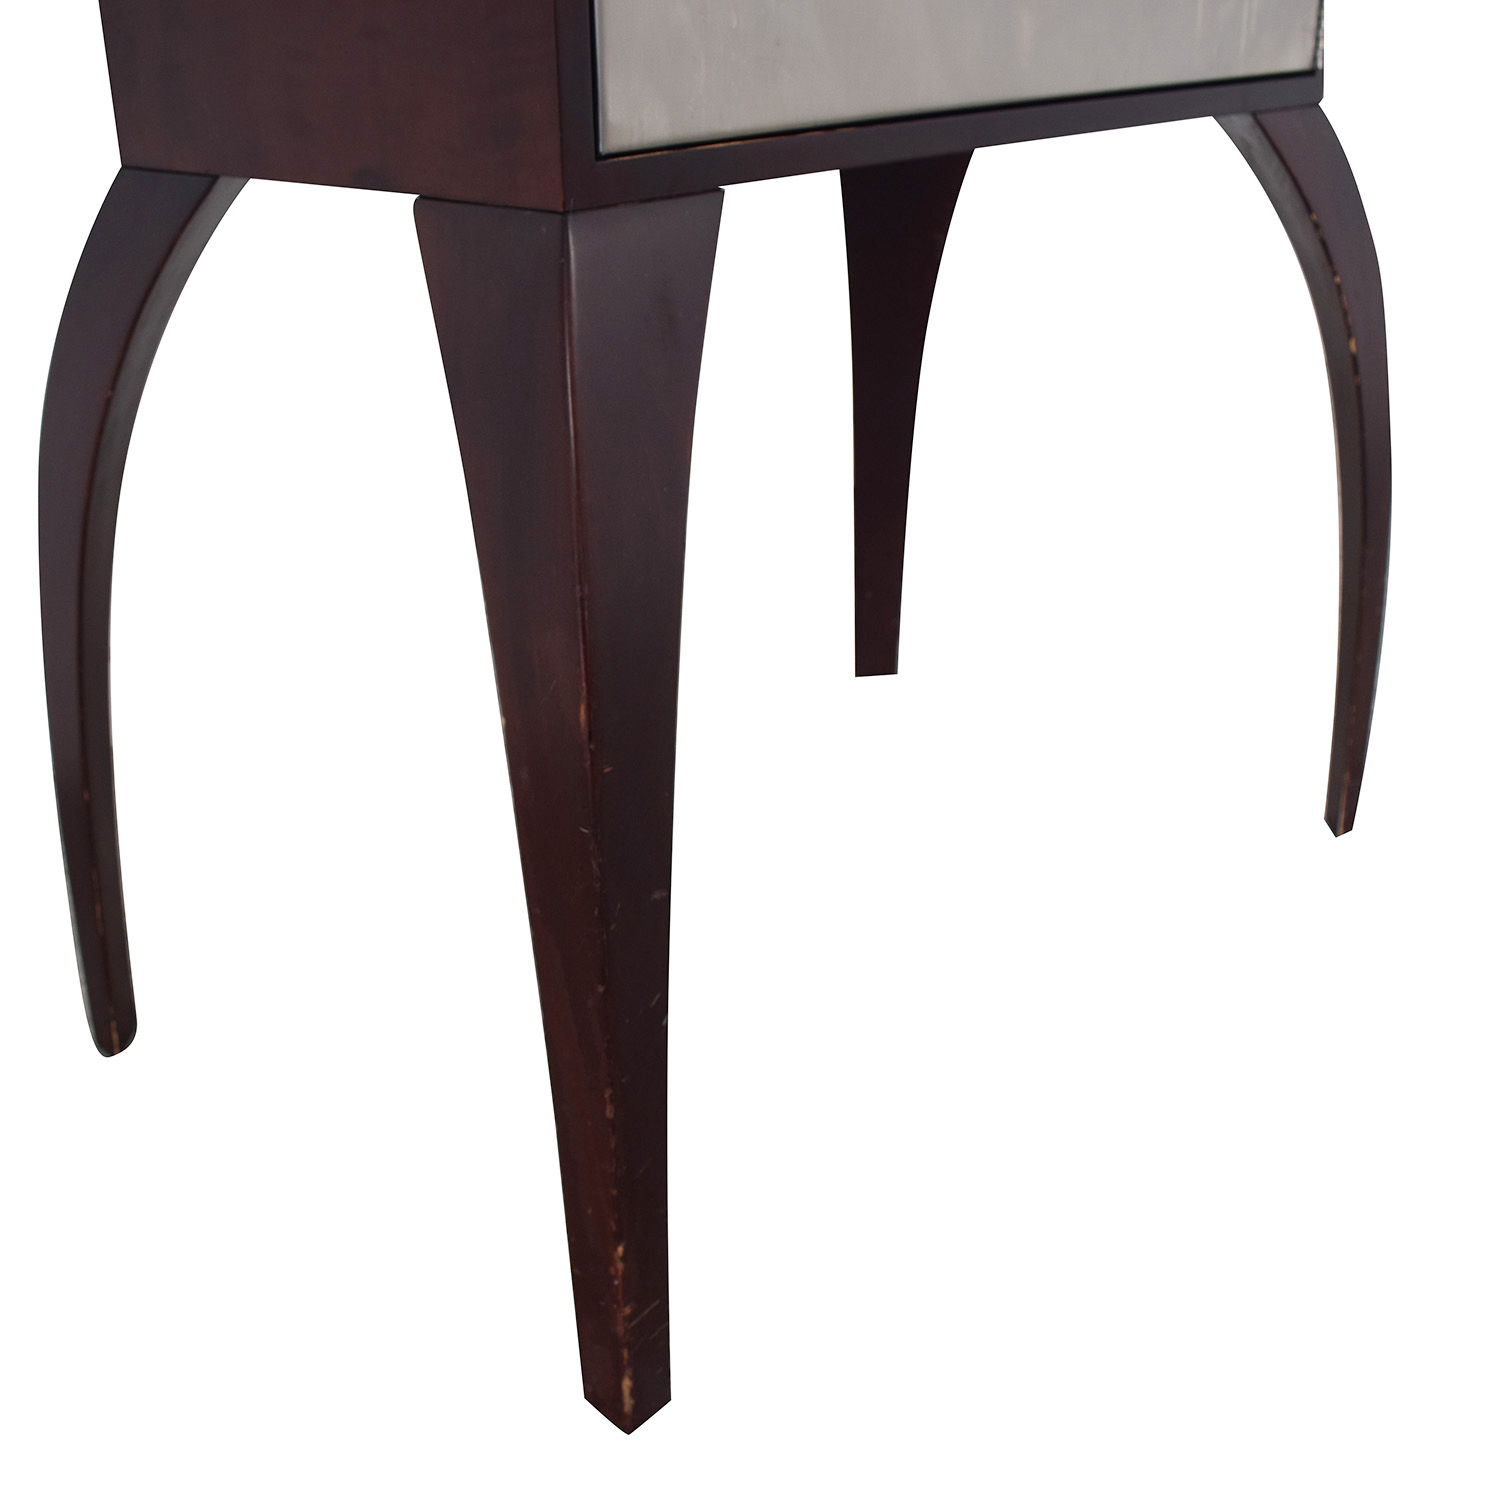 Dialogica Dialogica Wood and Chrome Cabinet price